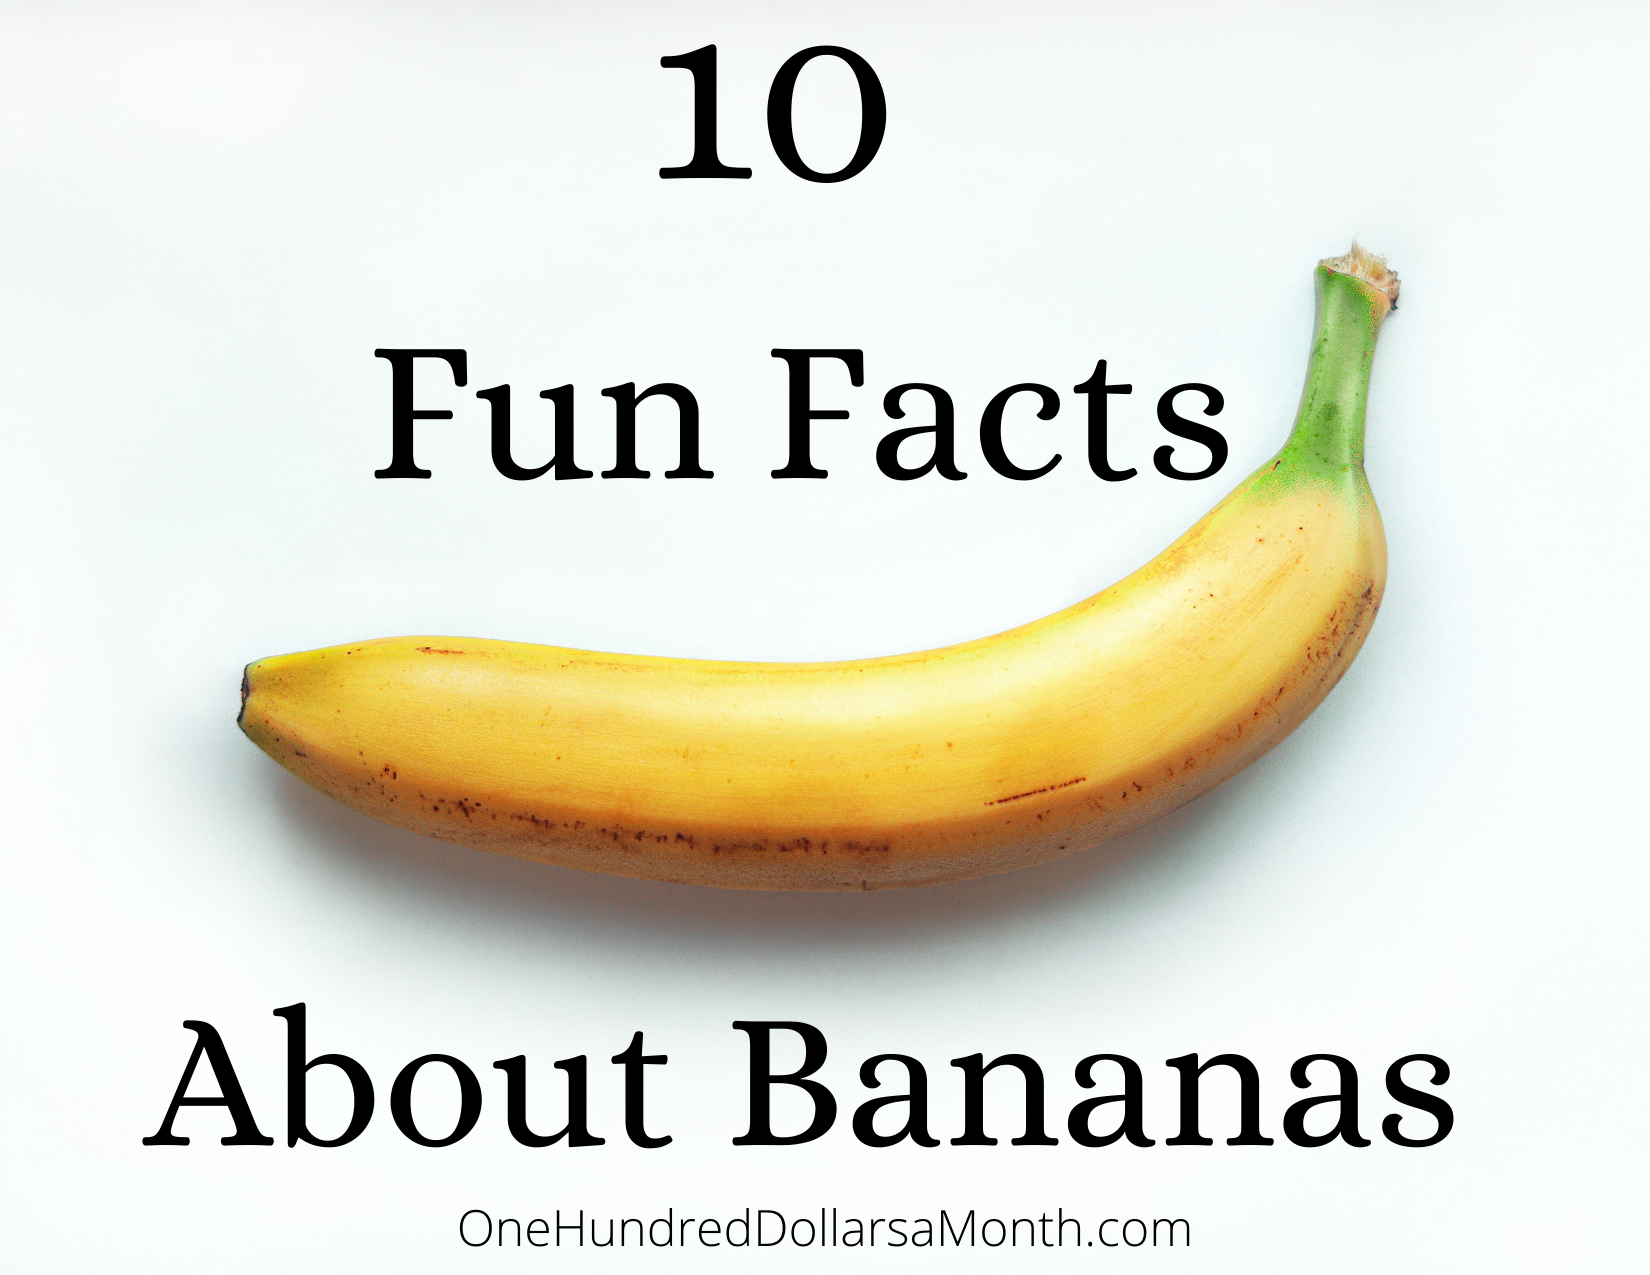 10 Fun Facts About Bananas